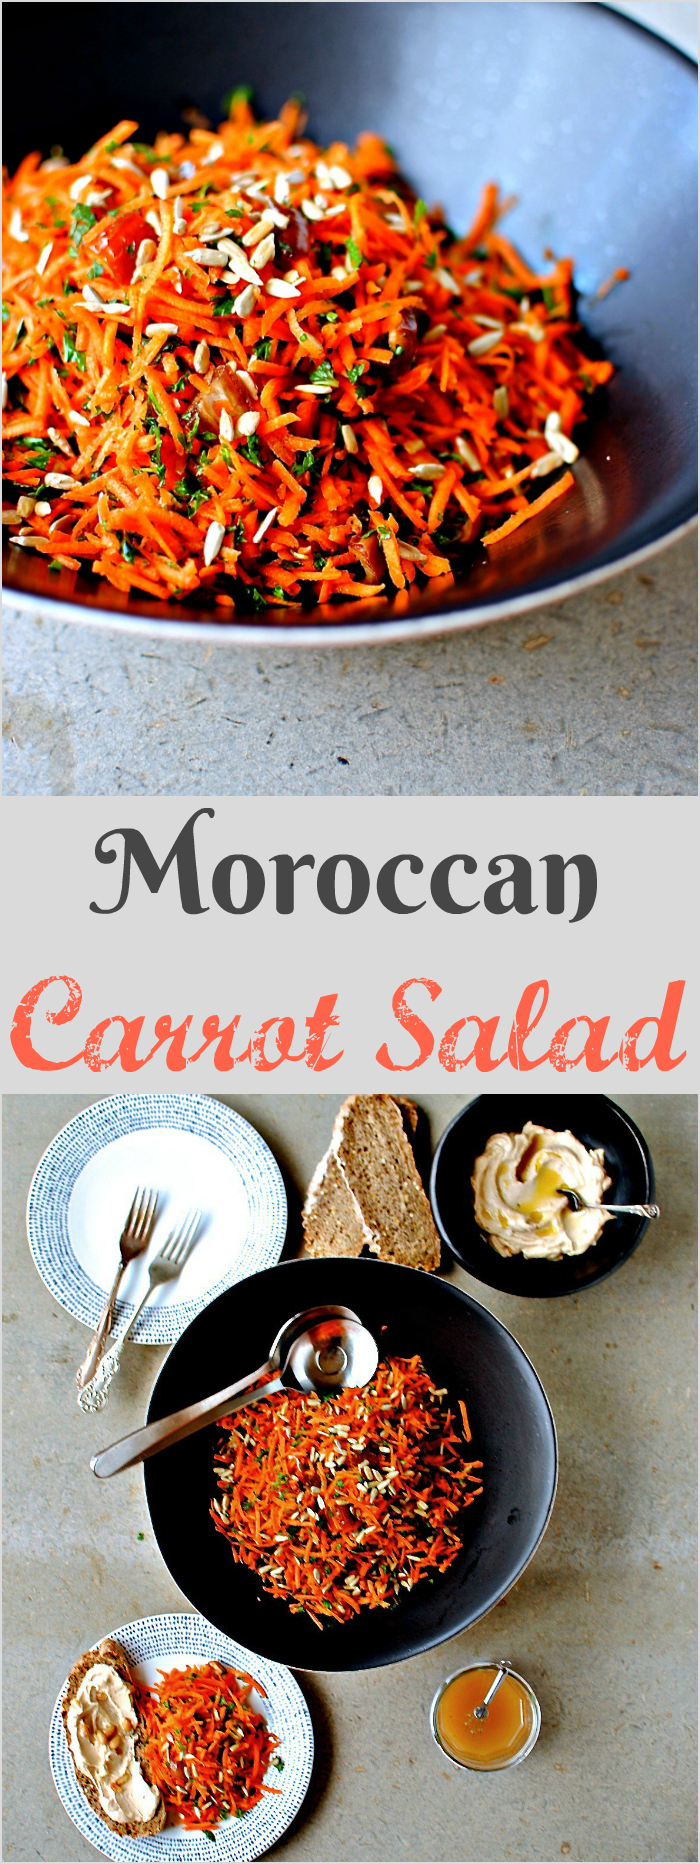 Moroccan #Carrot #Salad is a crunchy colourful and tangy side salad for alongside your favourite dips, grilled seafood, and anything vaguely North African.